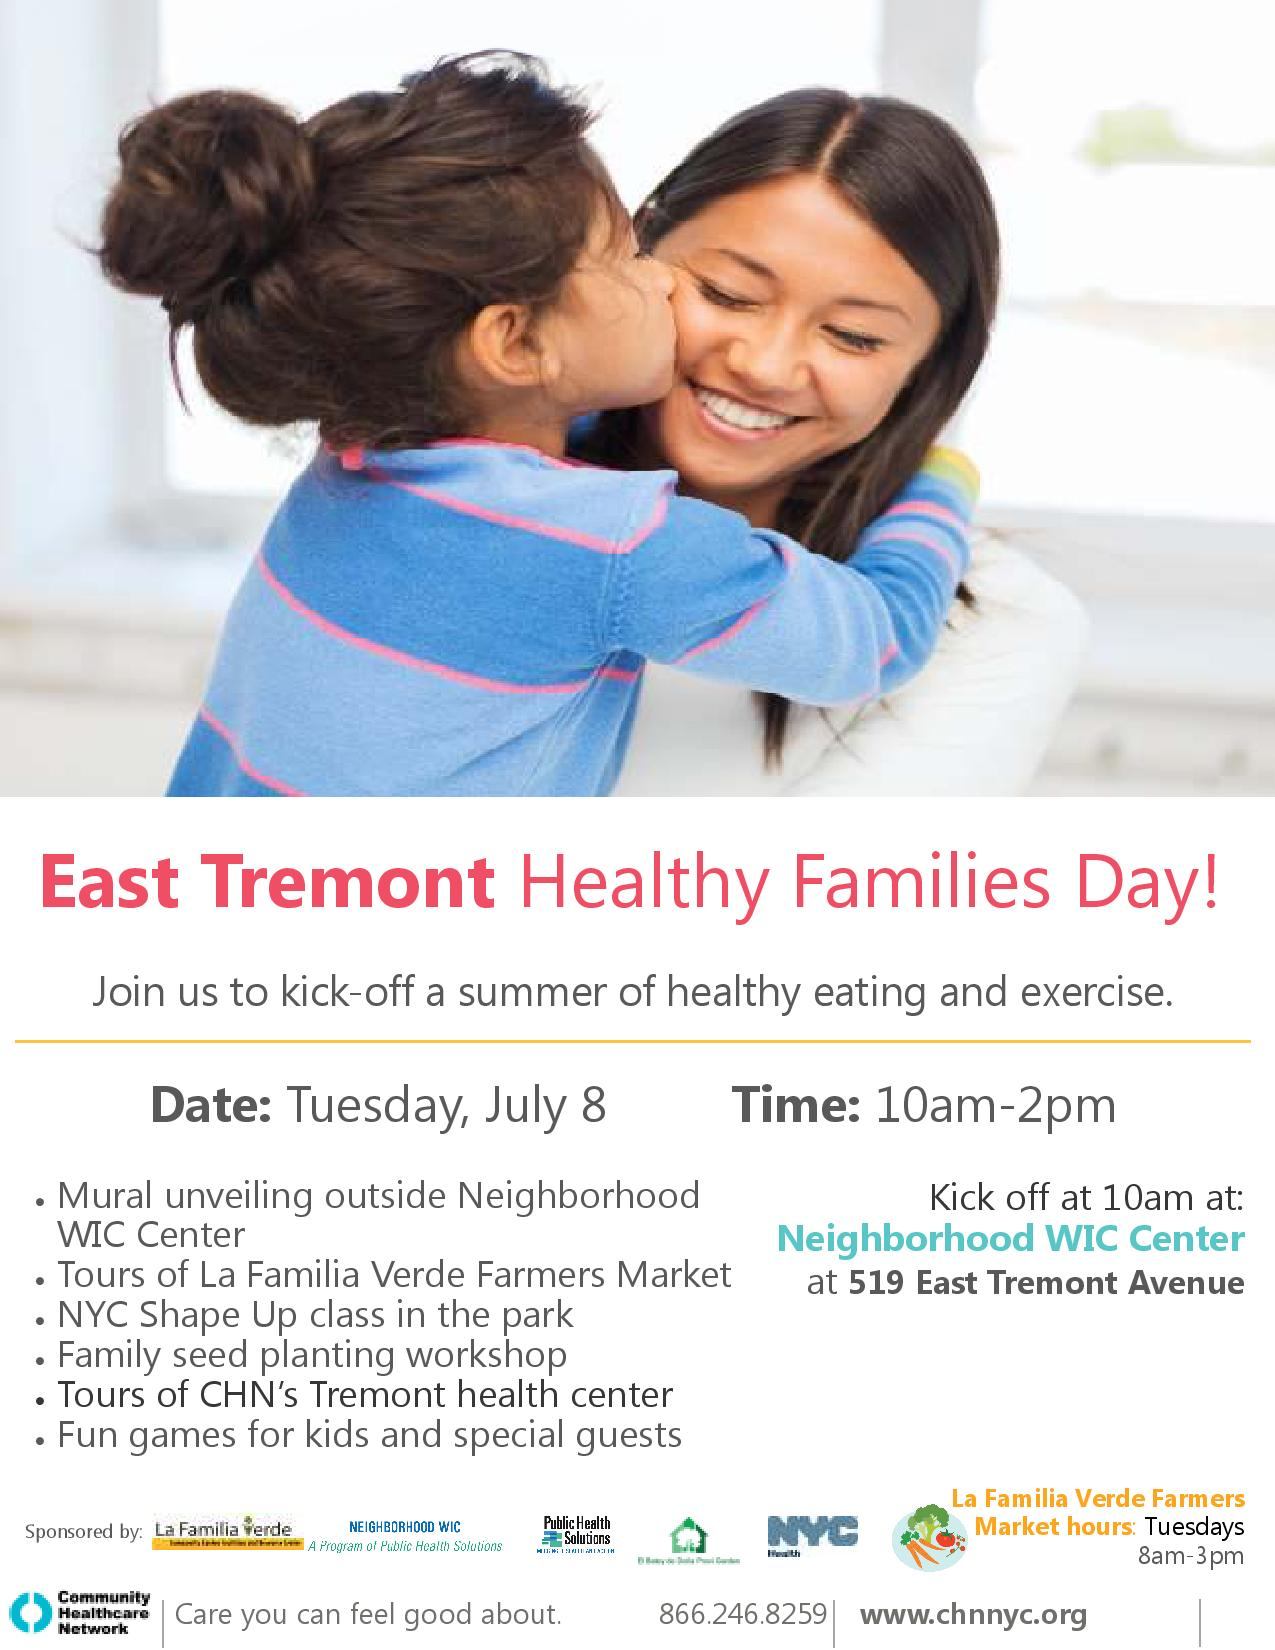 East Tremont Healthy Families Day